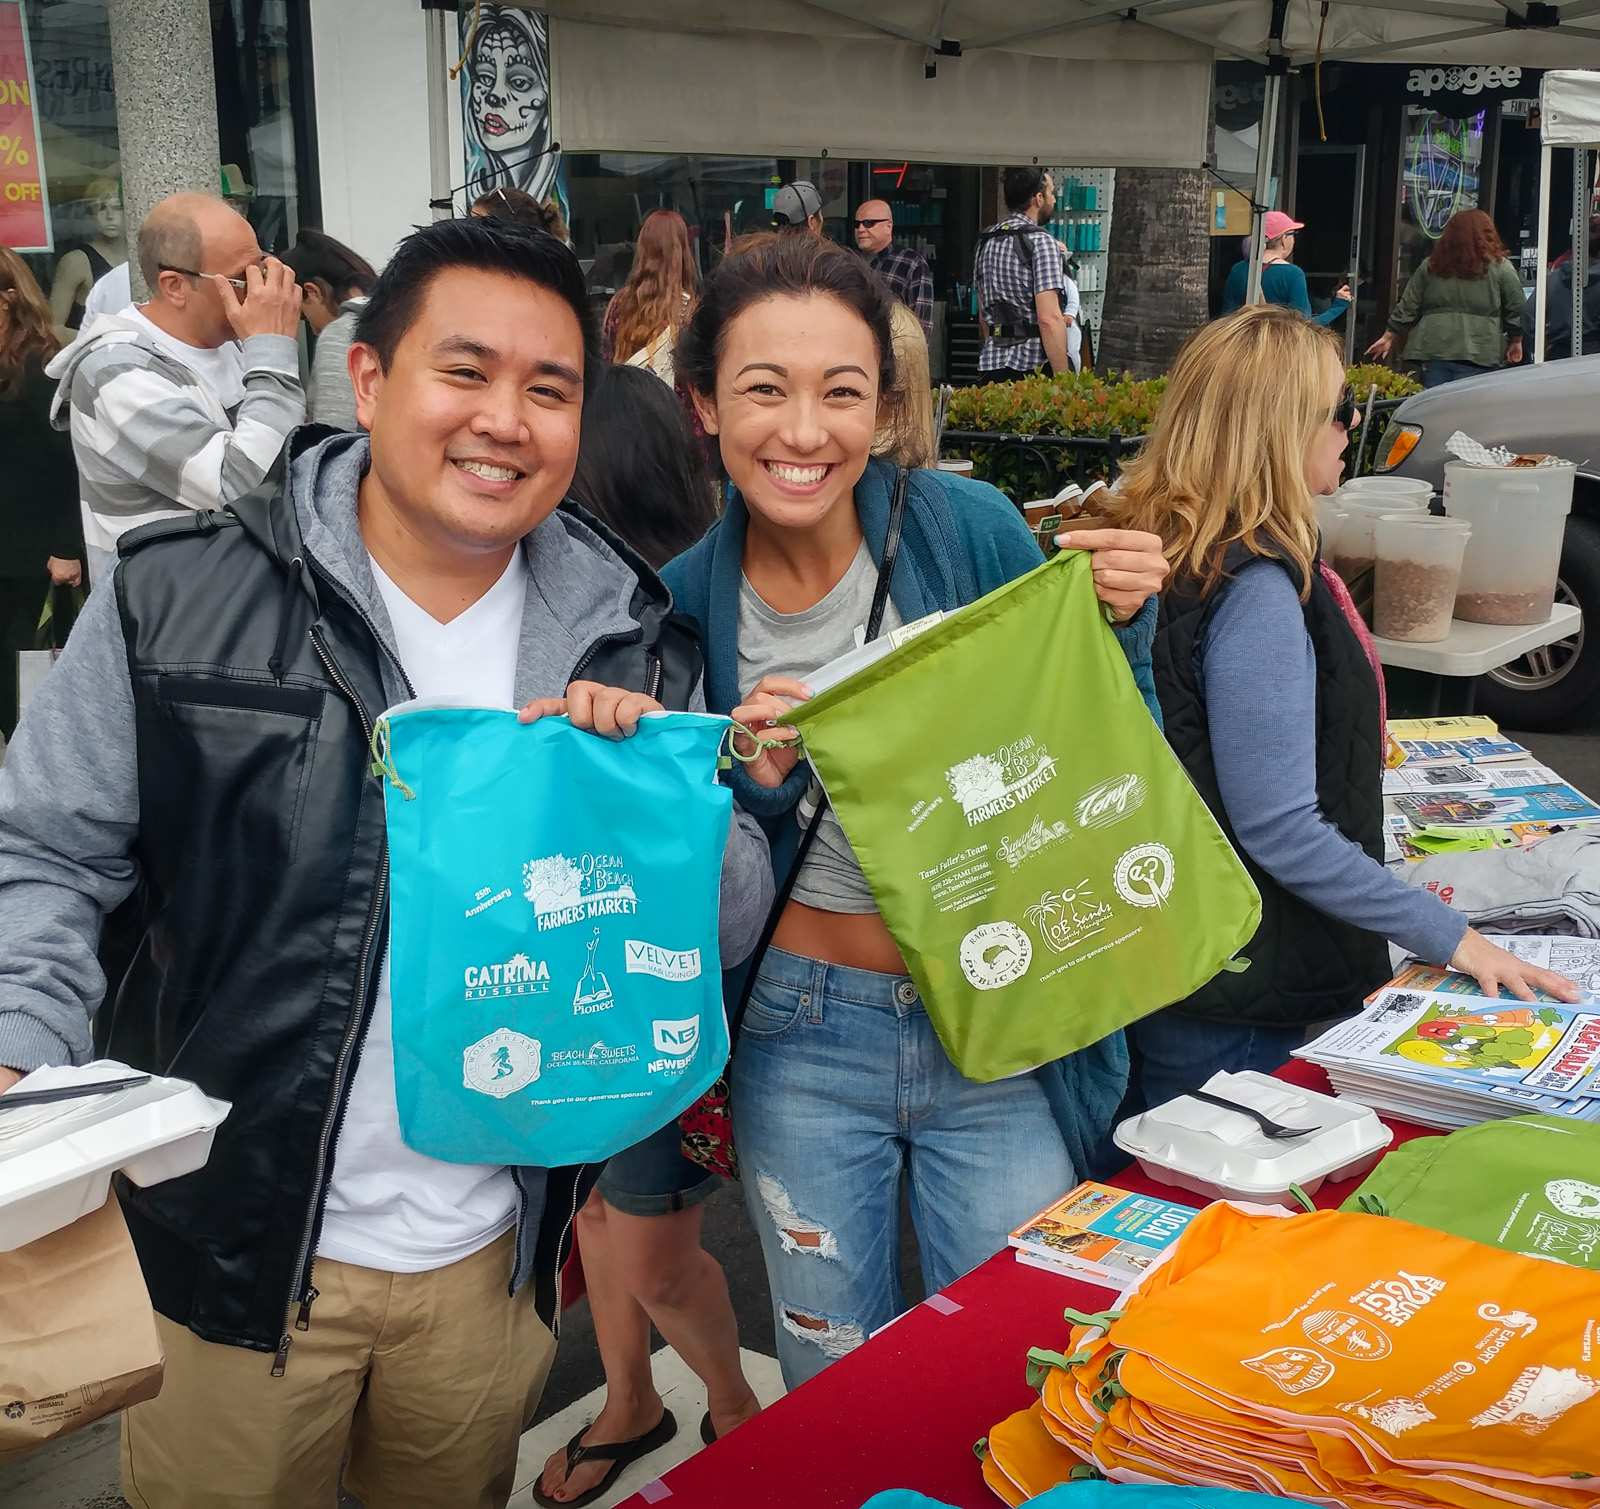 OBMA Reusable Bags for Farmers Market Shoppers